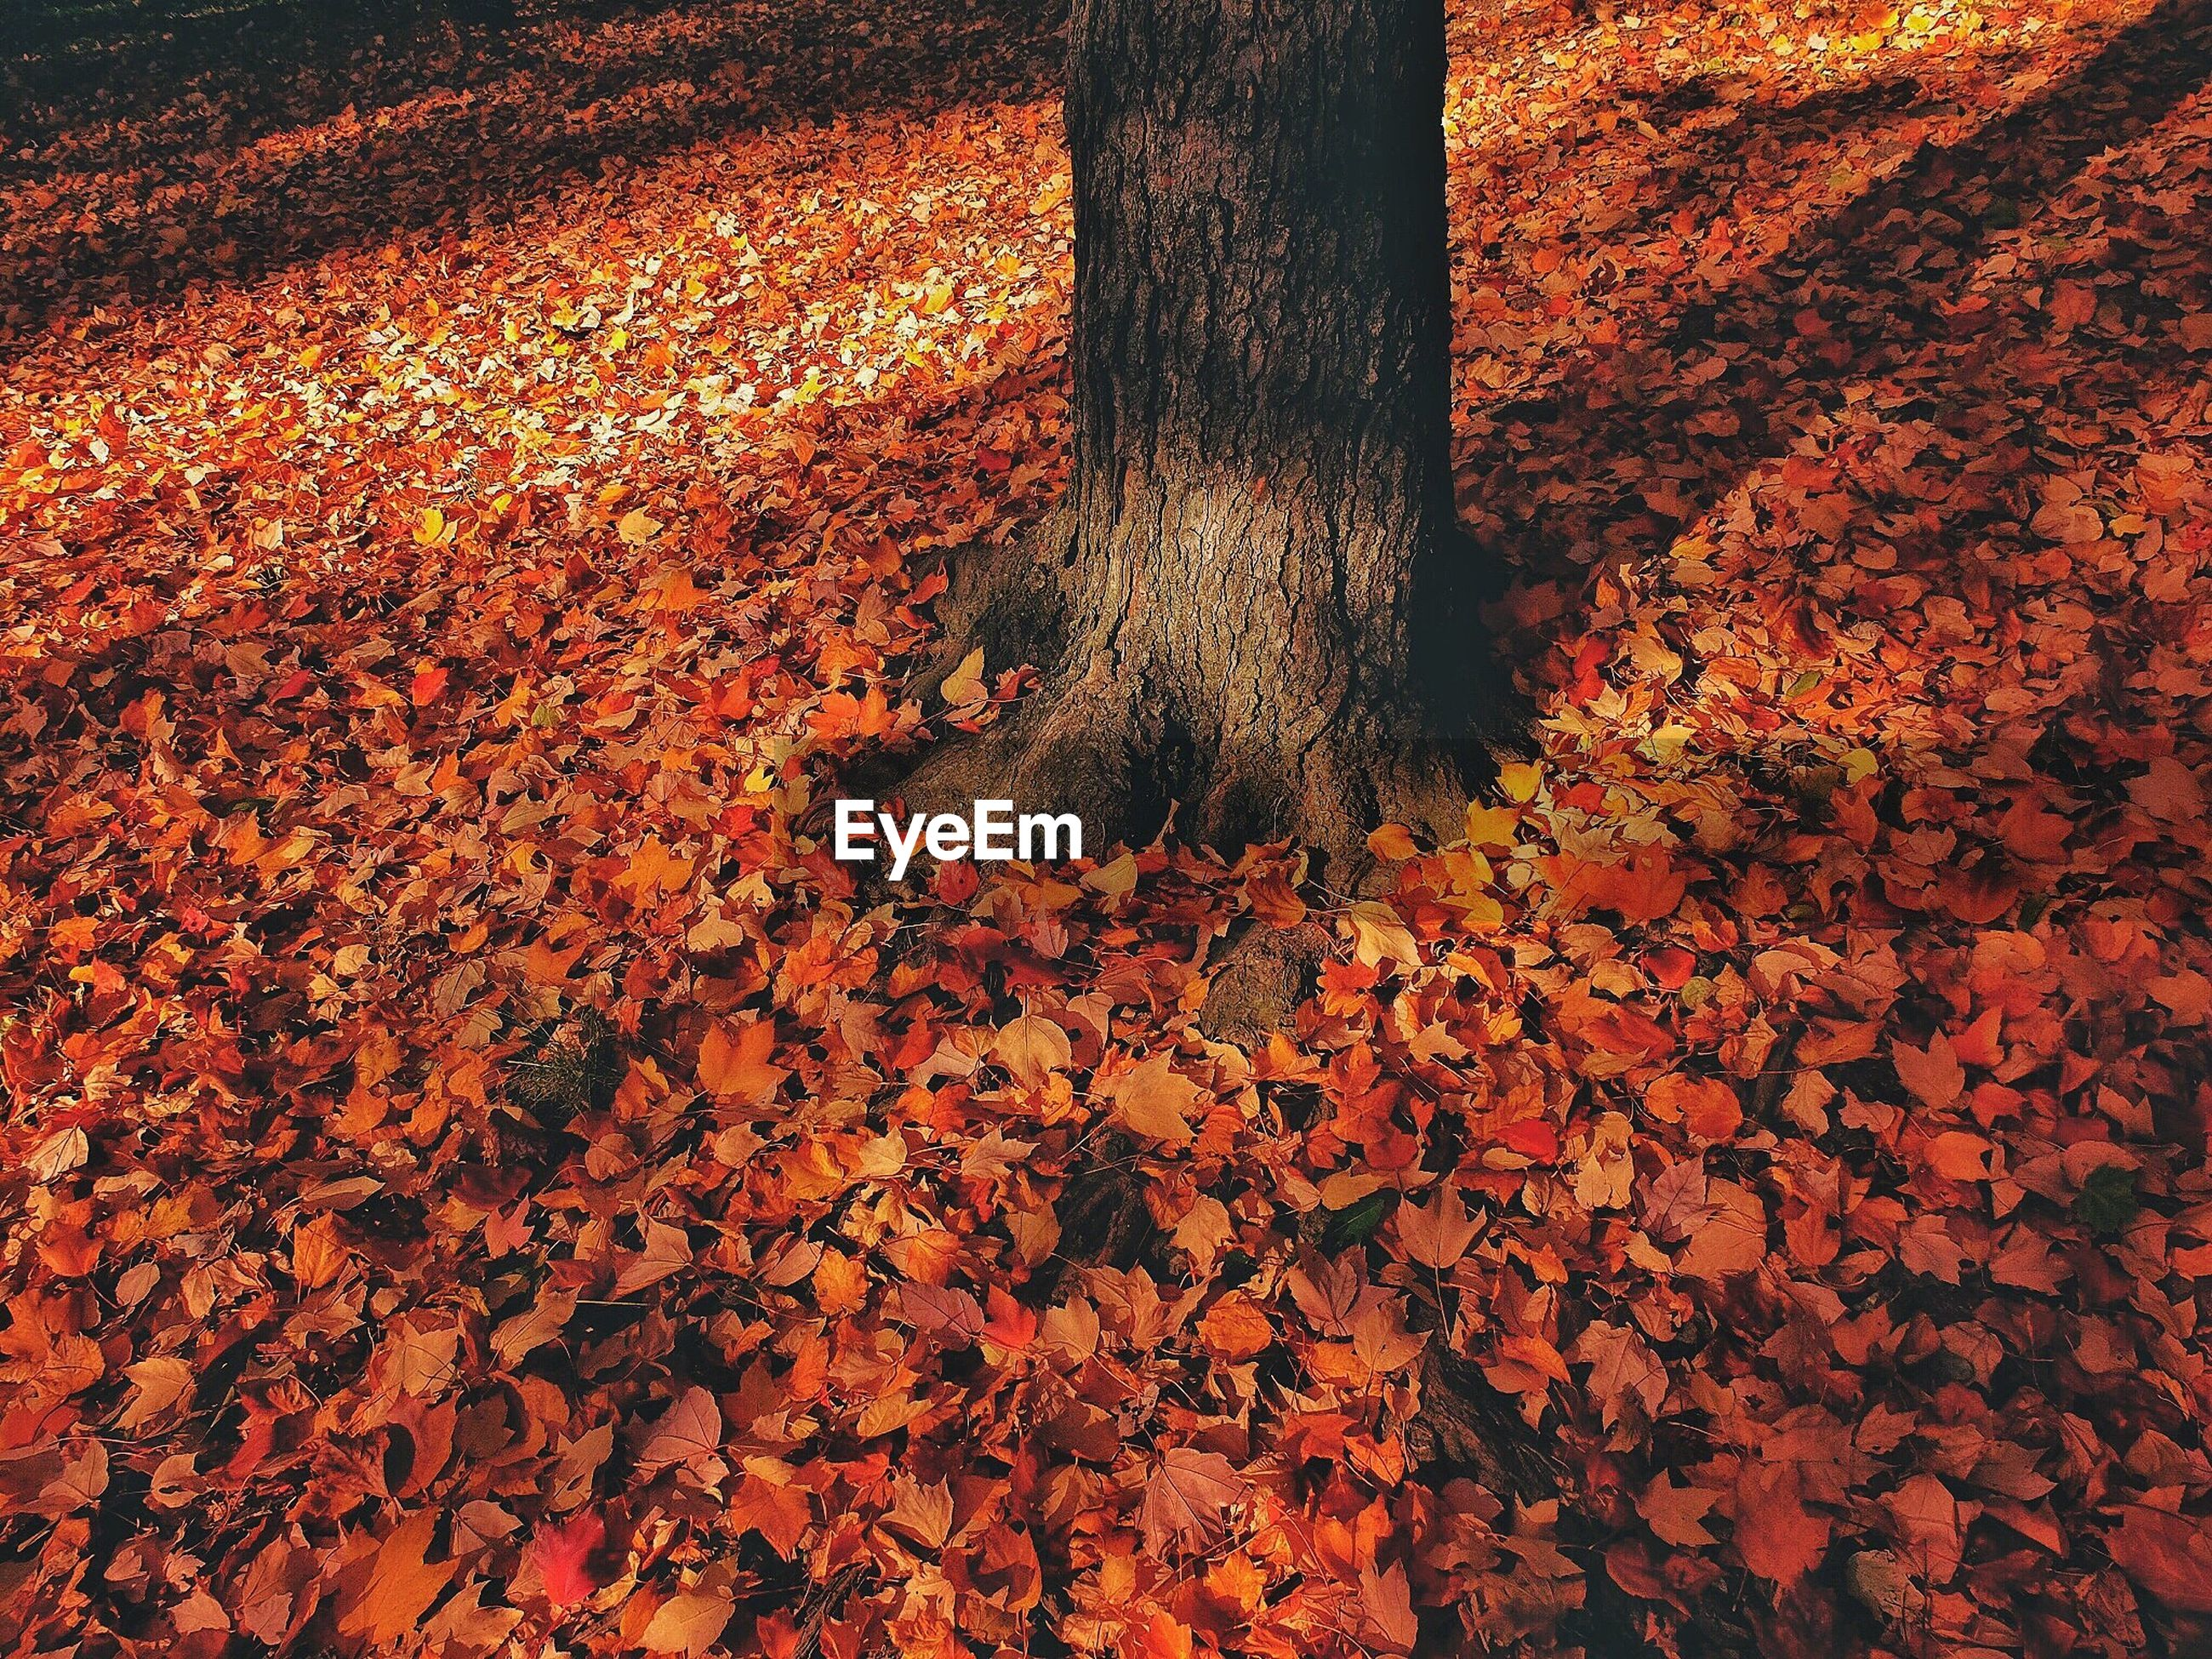 High angle view of autumn leaves fallen on field